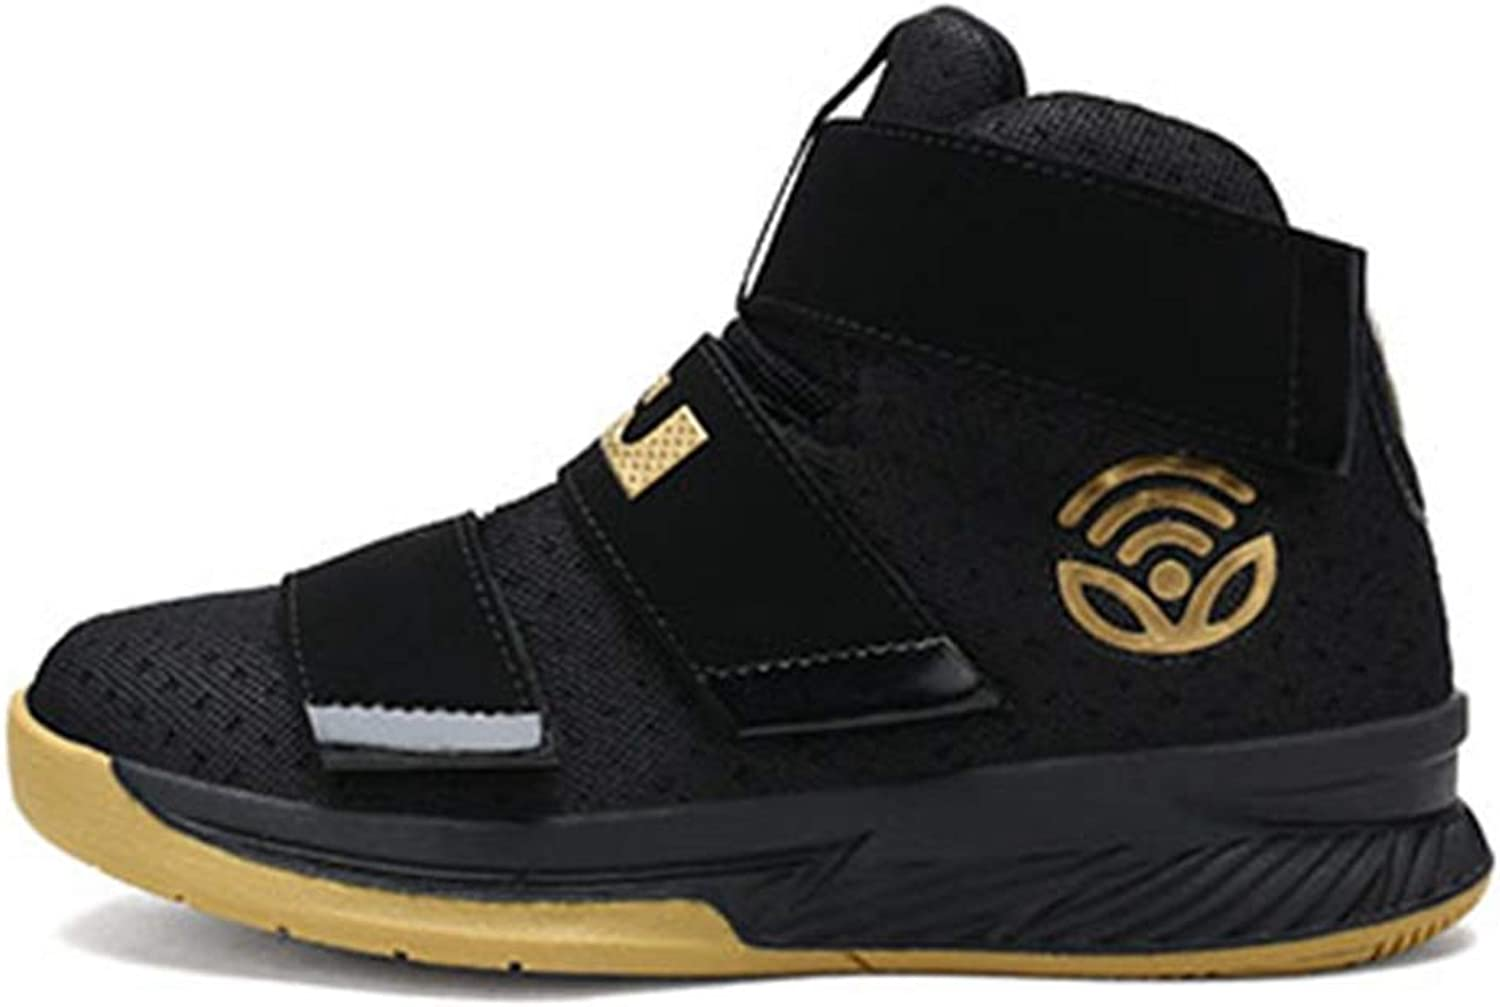 ZHRUI Men Basketball shoes High Top Sport Air Mesh Breathable Cushion Sneakers Outdoor Athletic Ankle Male Boots Trainers (color   Black gold, Size   7=41 EU)